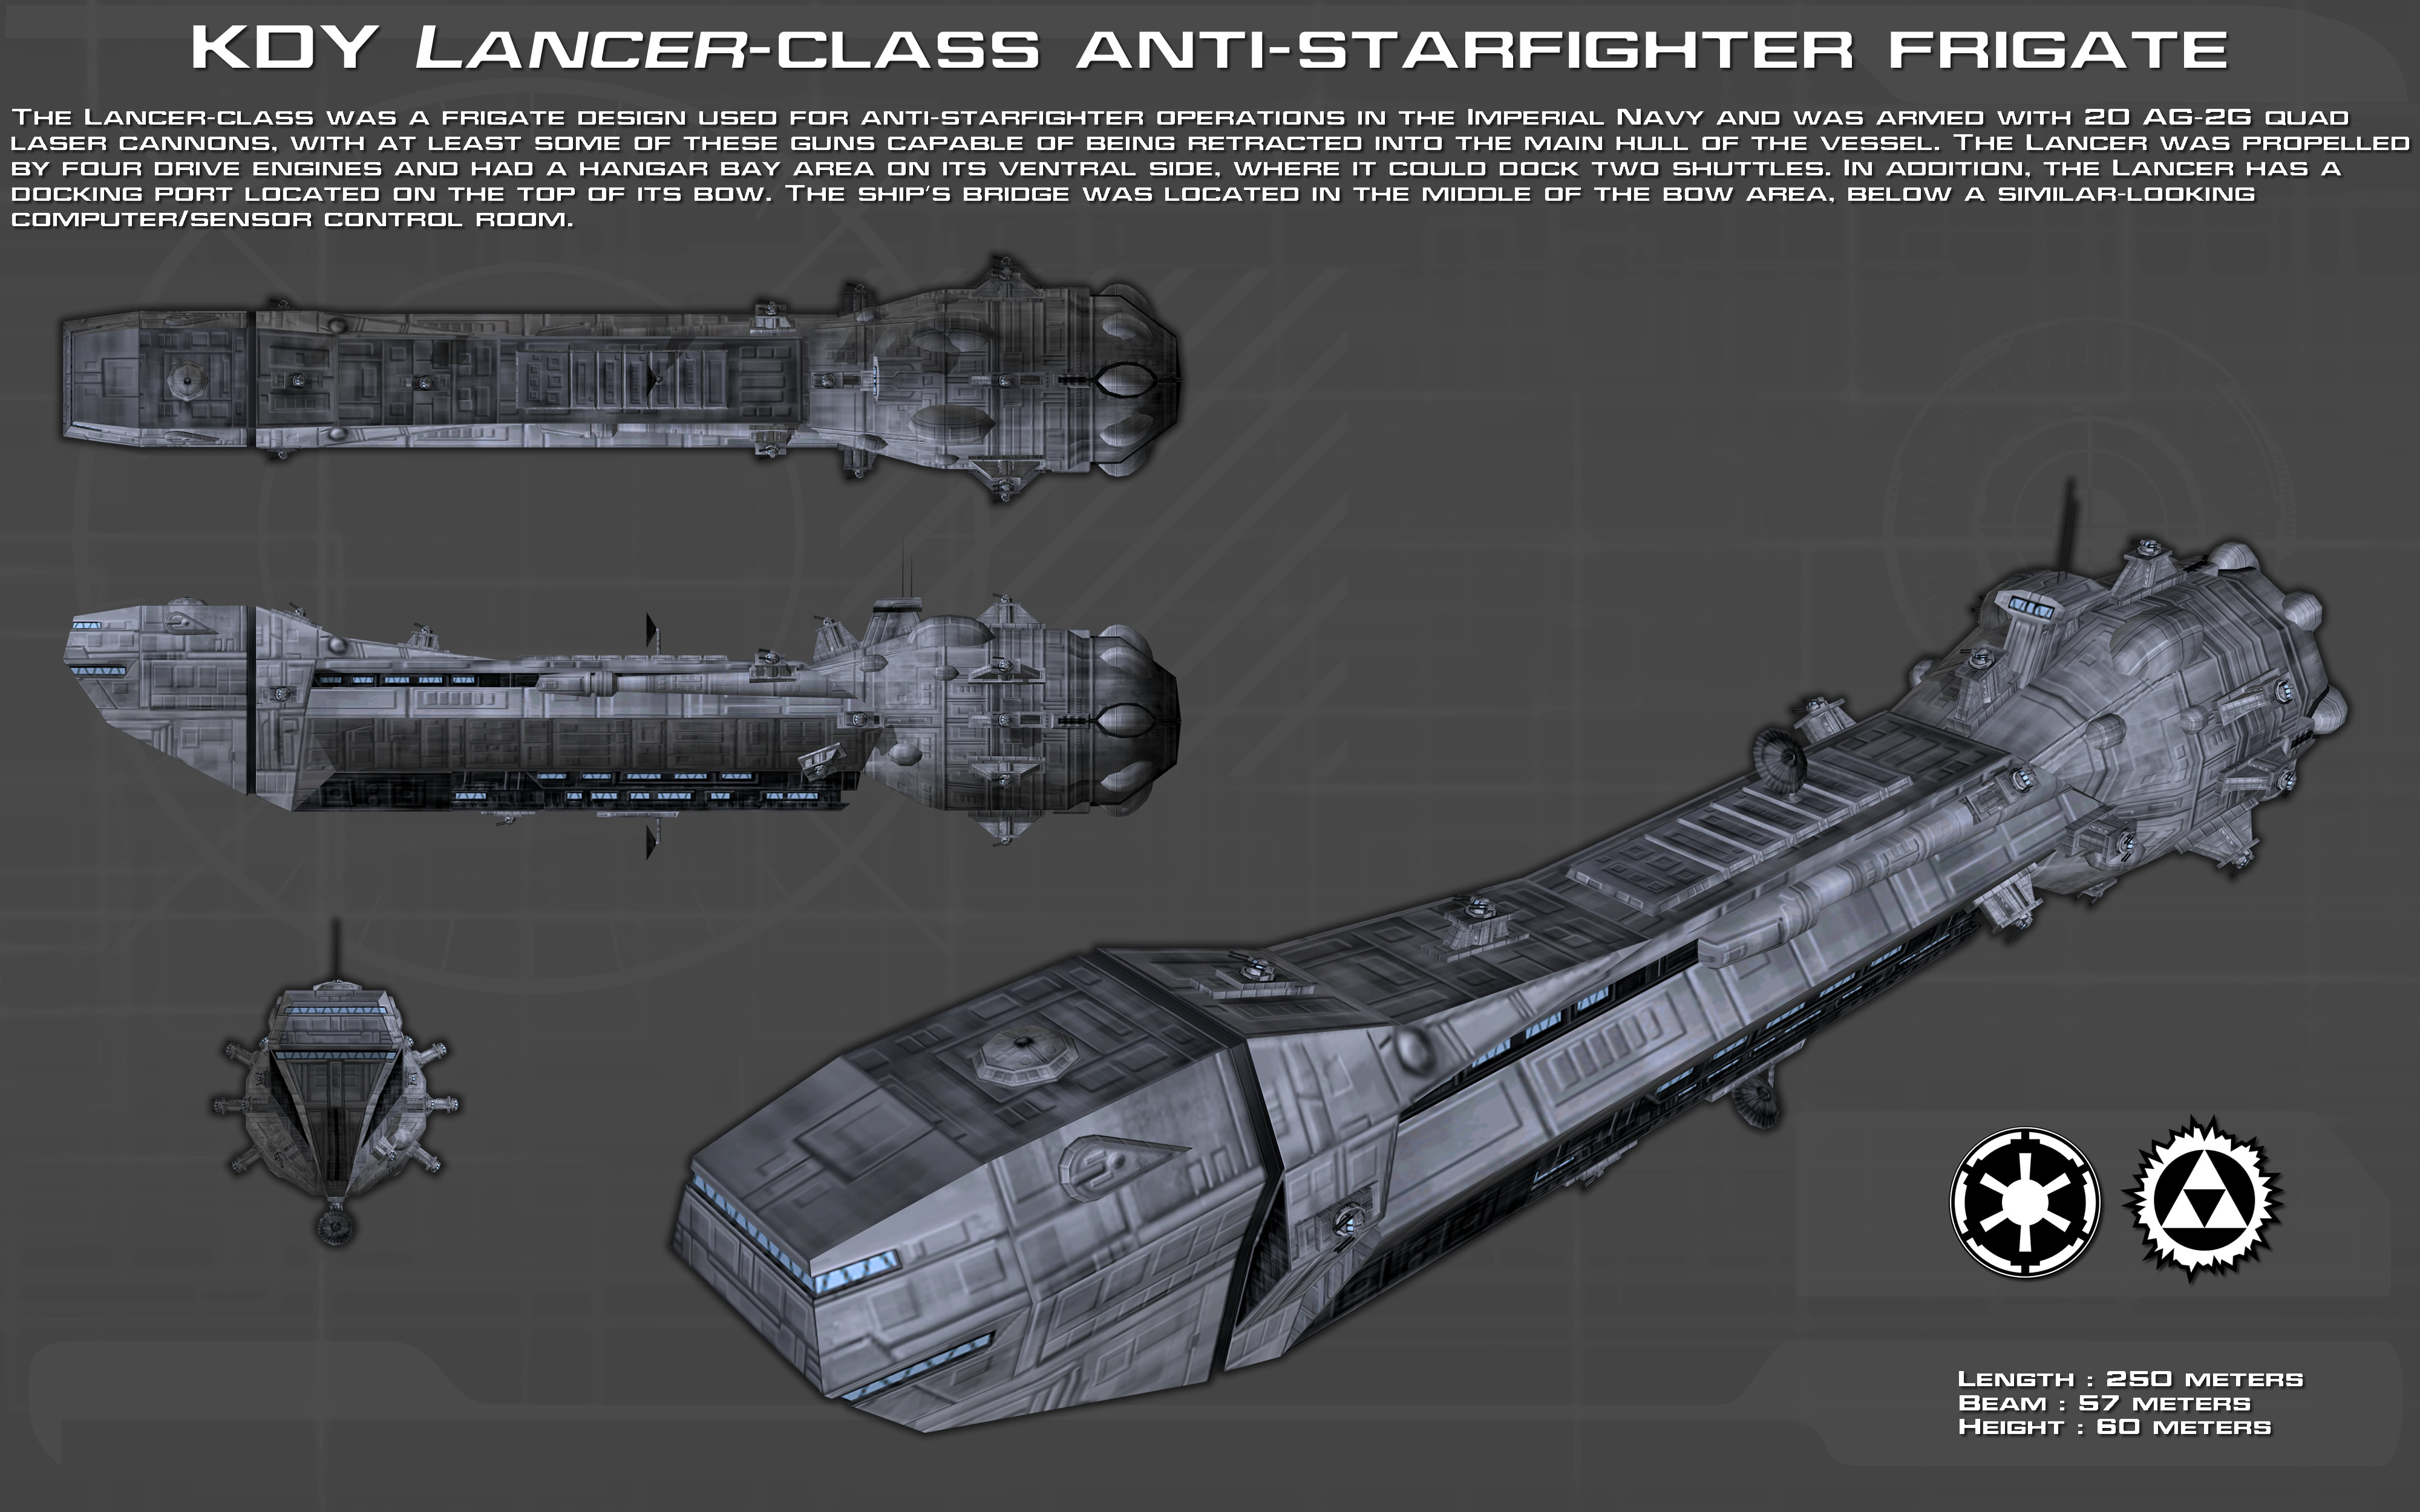 orig08.deviantart.net/c8d7/f/2016/139/6/9/lancer_class_frigate_ortho__update__by_unusualsuspex-da2jvrm.jpg